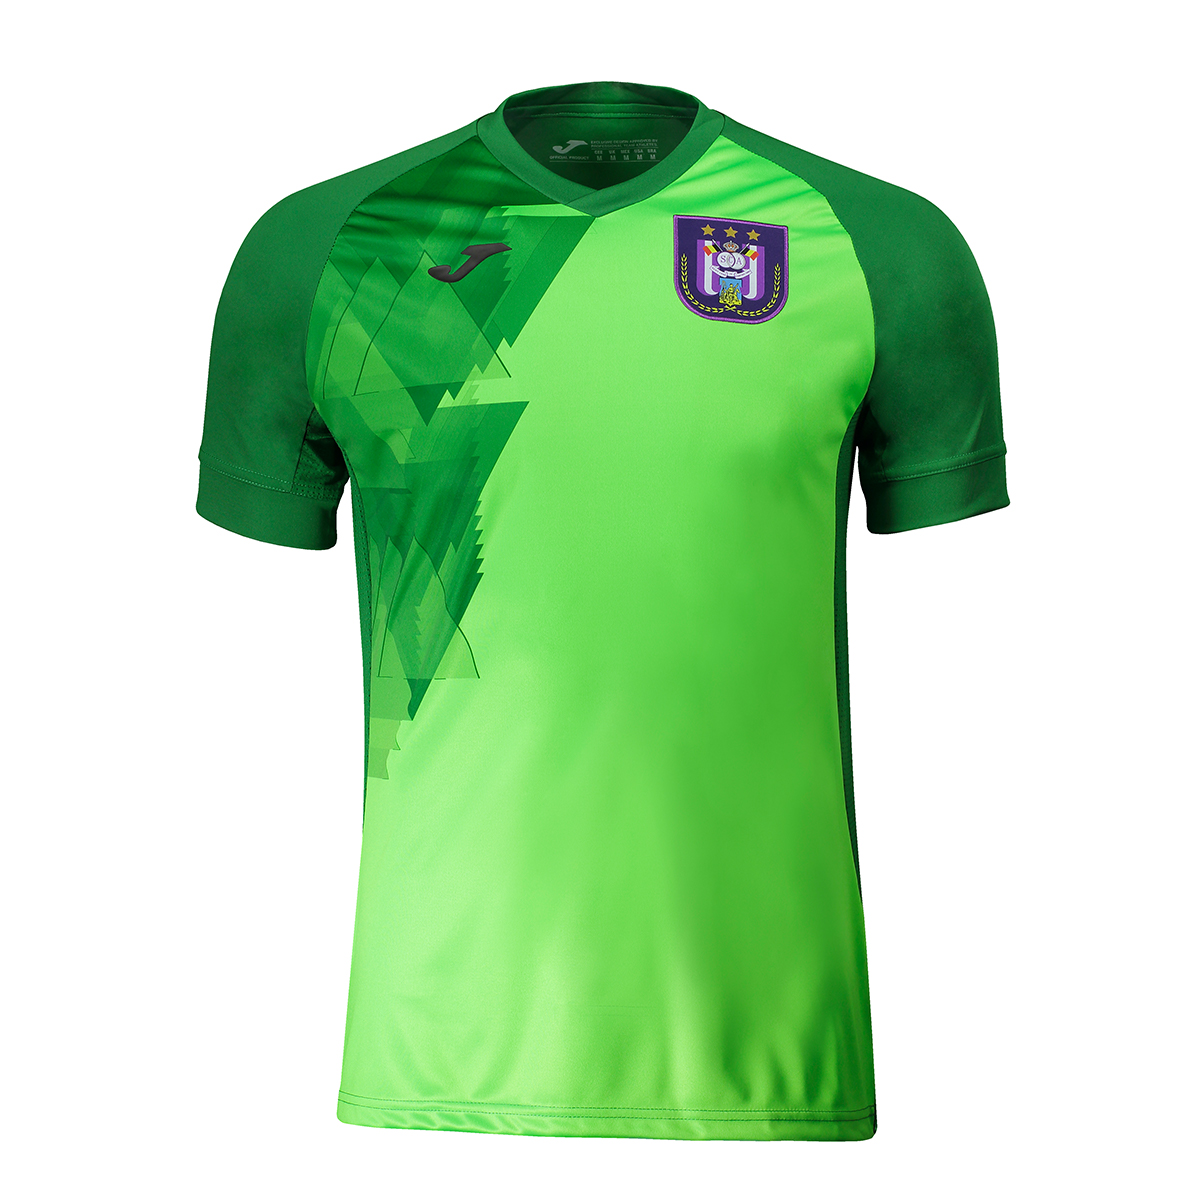 RSCA Training Shirt 2020/2021 - Groen